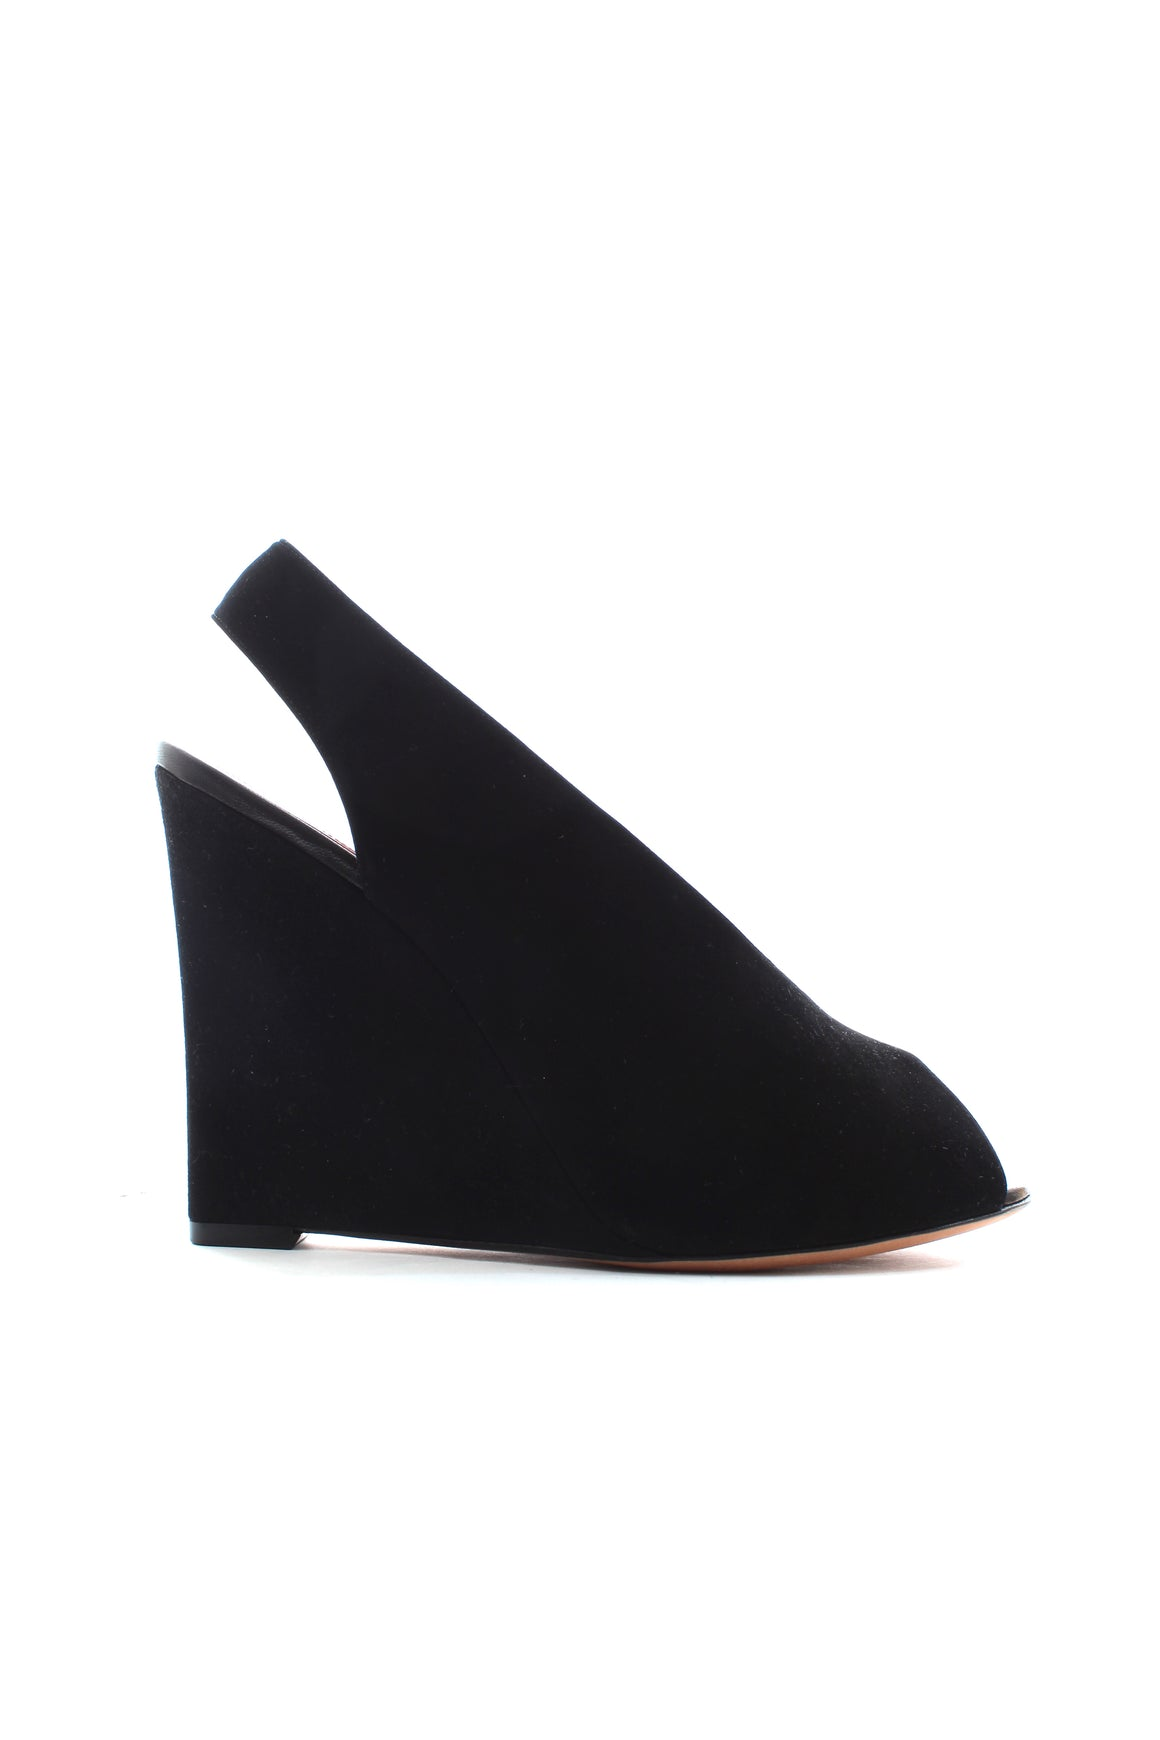 Celine Suede Open Toe Wedge Pumps